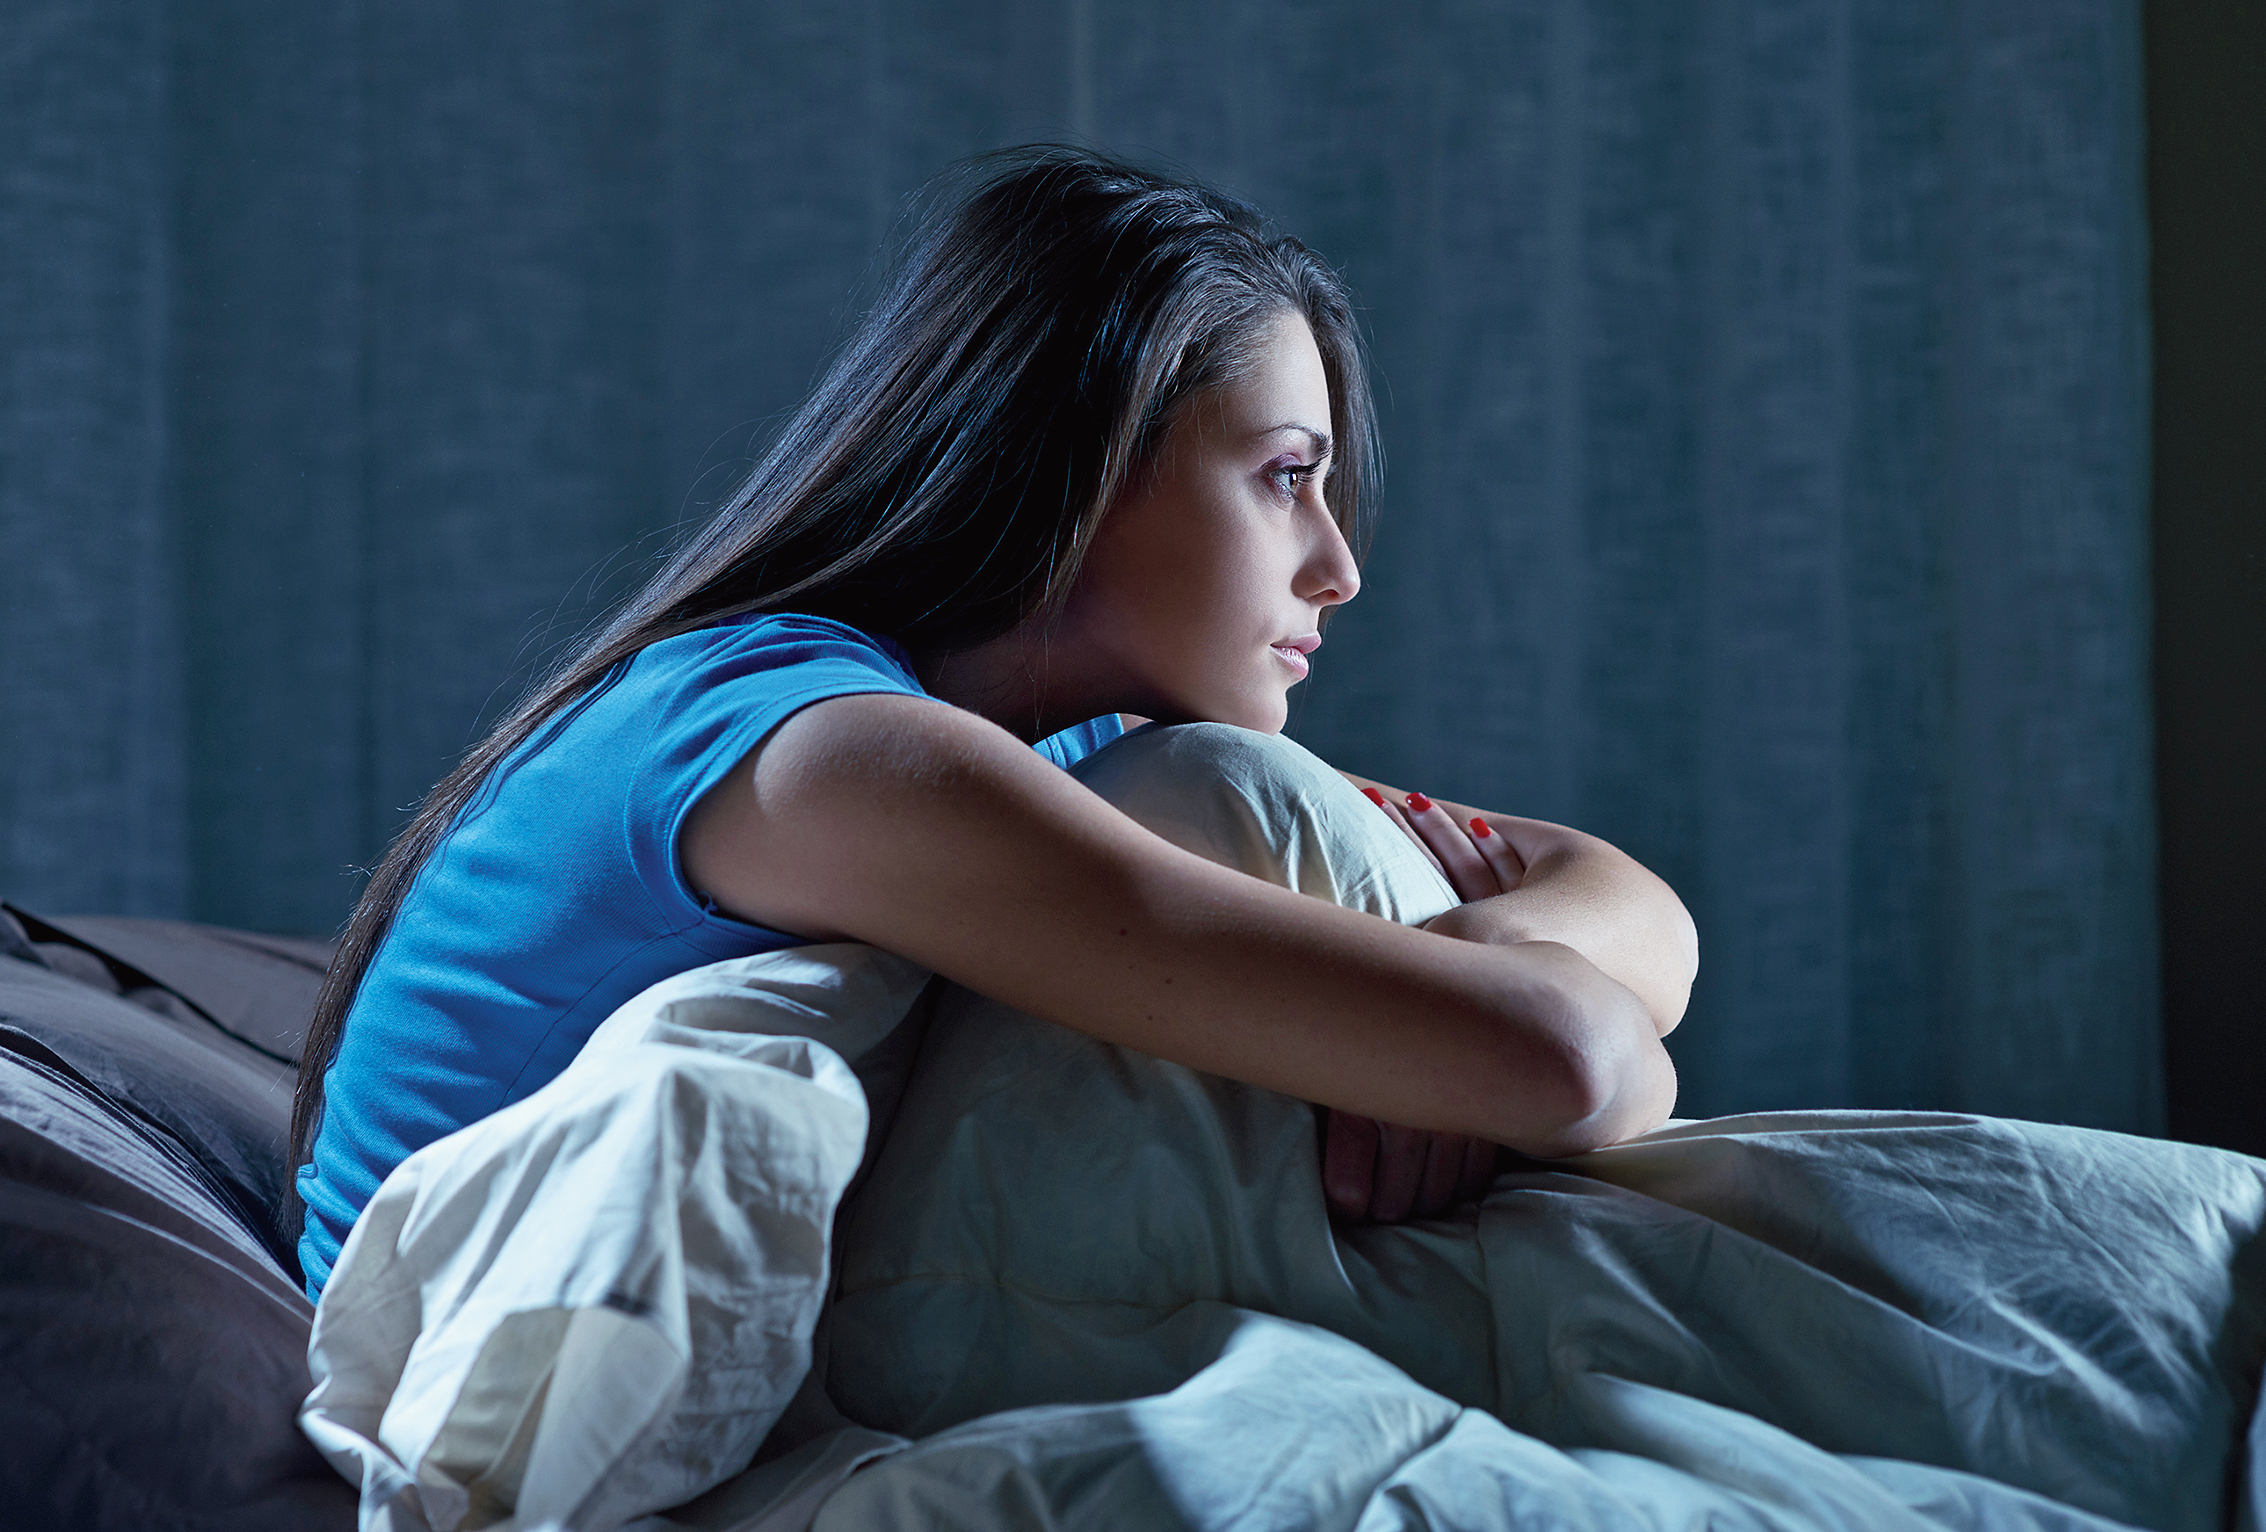 You may have inherited your insomnia